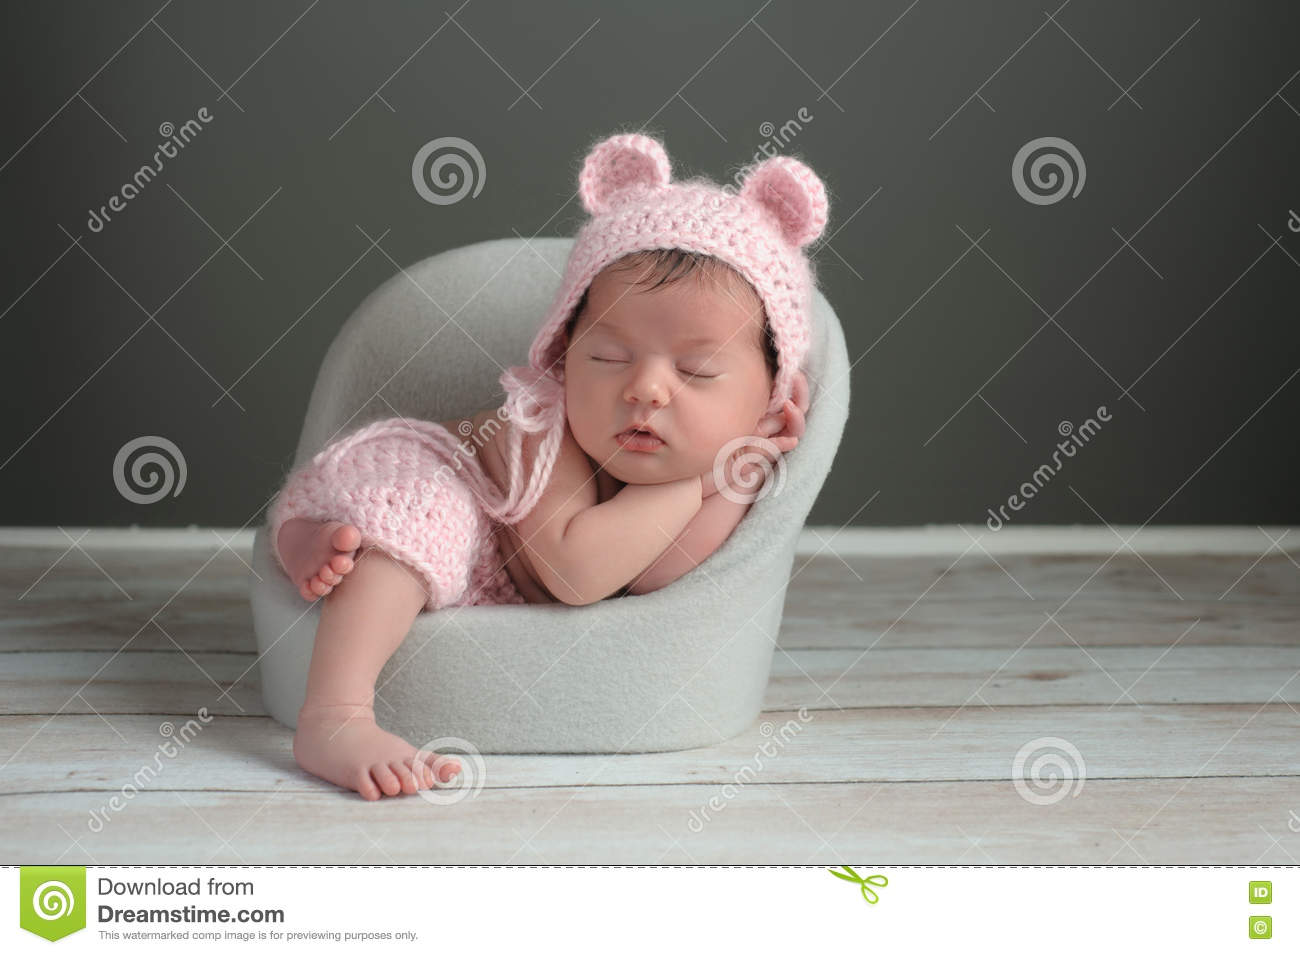 baby sleeping chair ripple black leather office newborn girl wearing a pink bear hat stock photo image